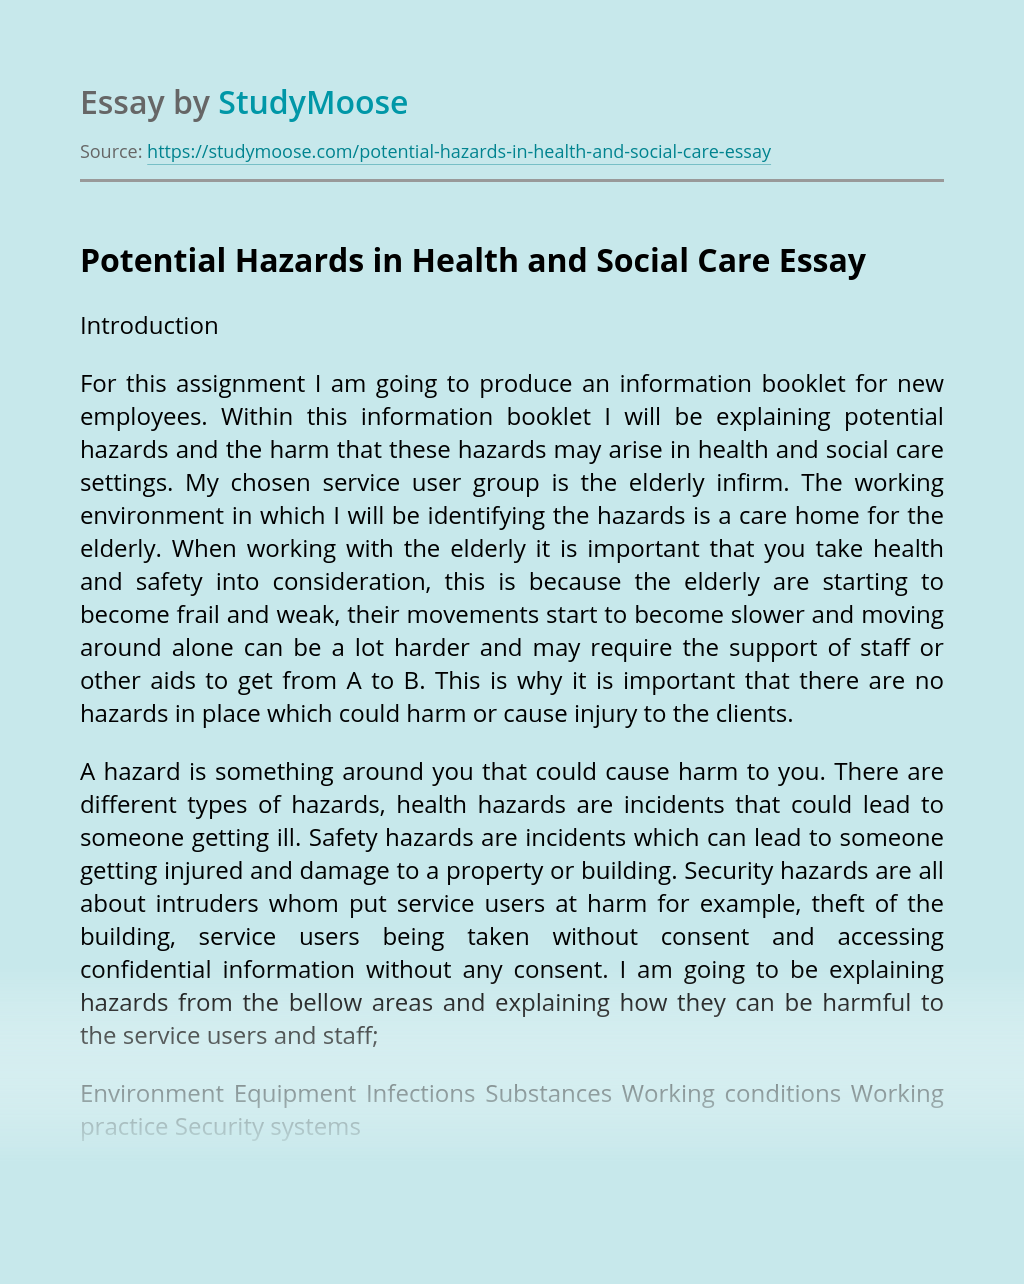 Potential Hazards in Health and Social Care